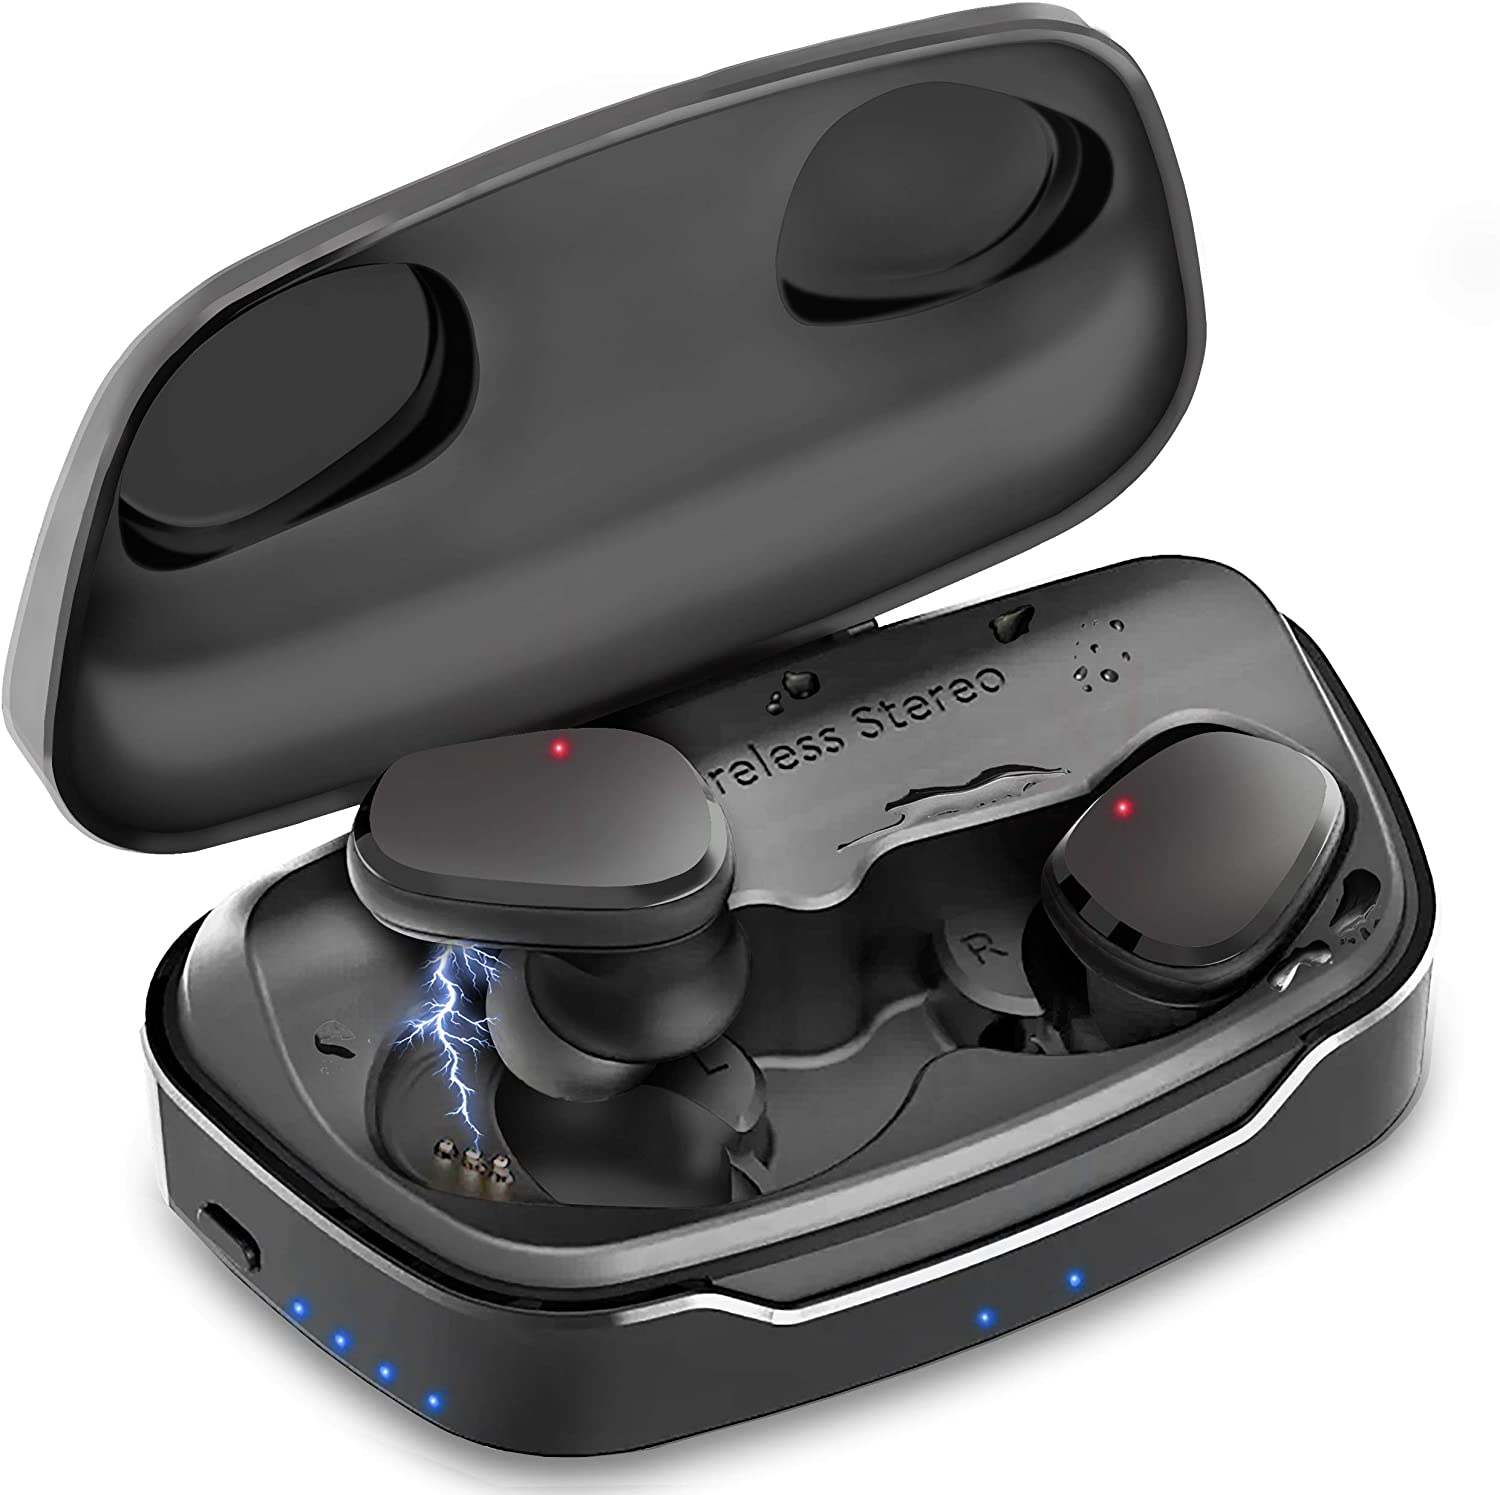 Wavebud Quasar WB-QSD06, TWS Bluetooth 5.0 True Wireless Stereo Earbuds Headphones, Waterproof, HD Bass ?5 Sound Settings?,?Sport FIT?, Mic, ?90-100Hr ? use, ?Power Bank? Feature